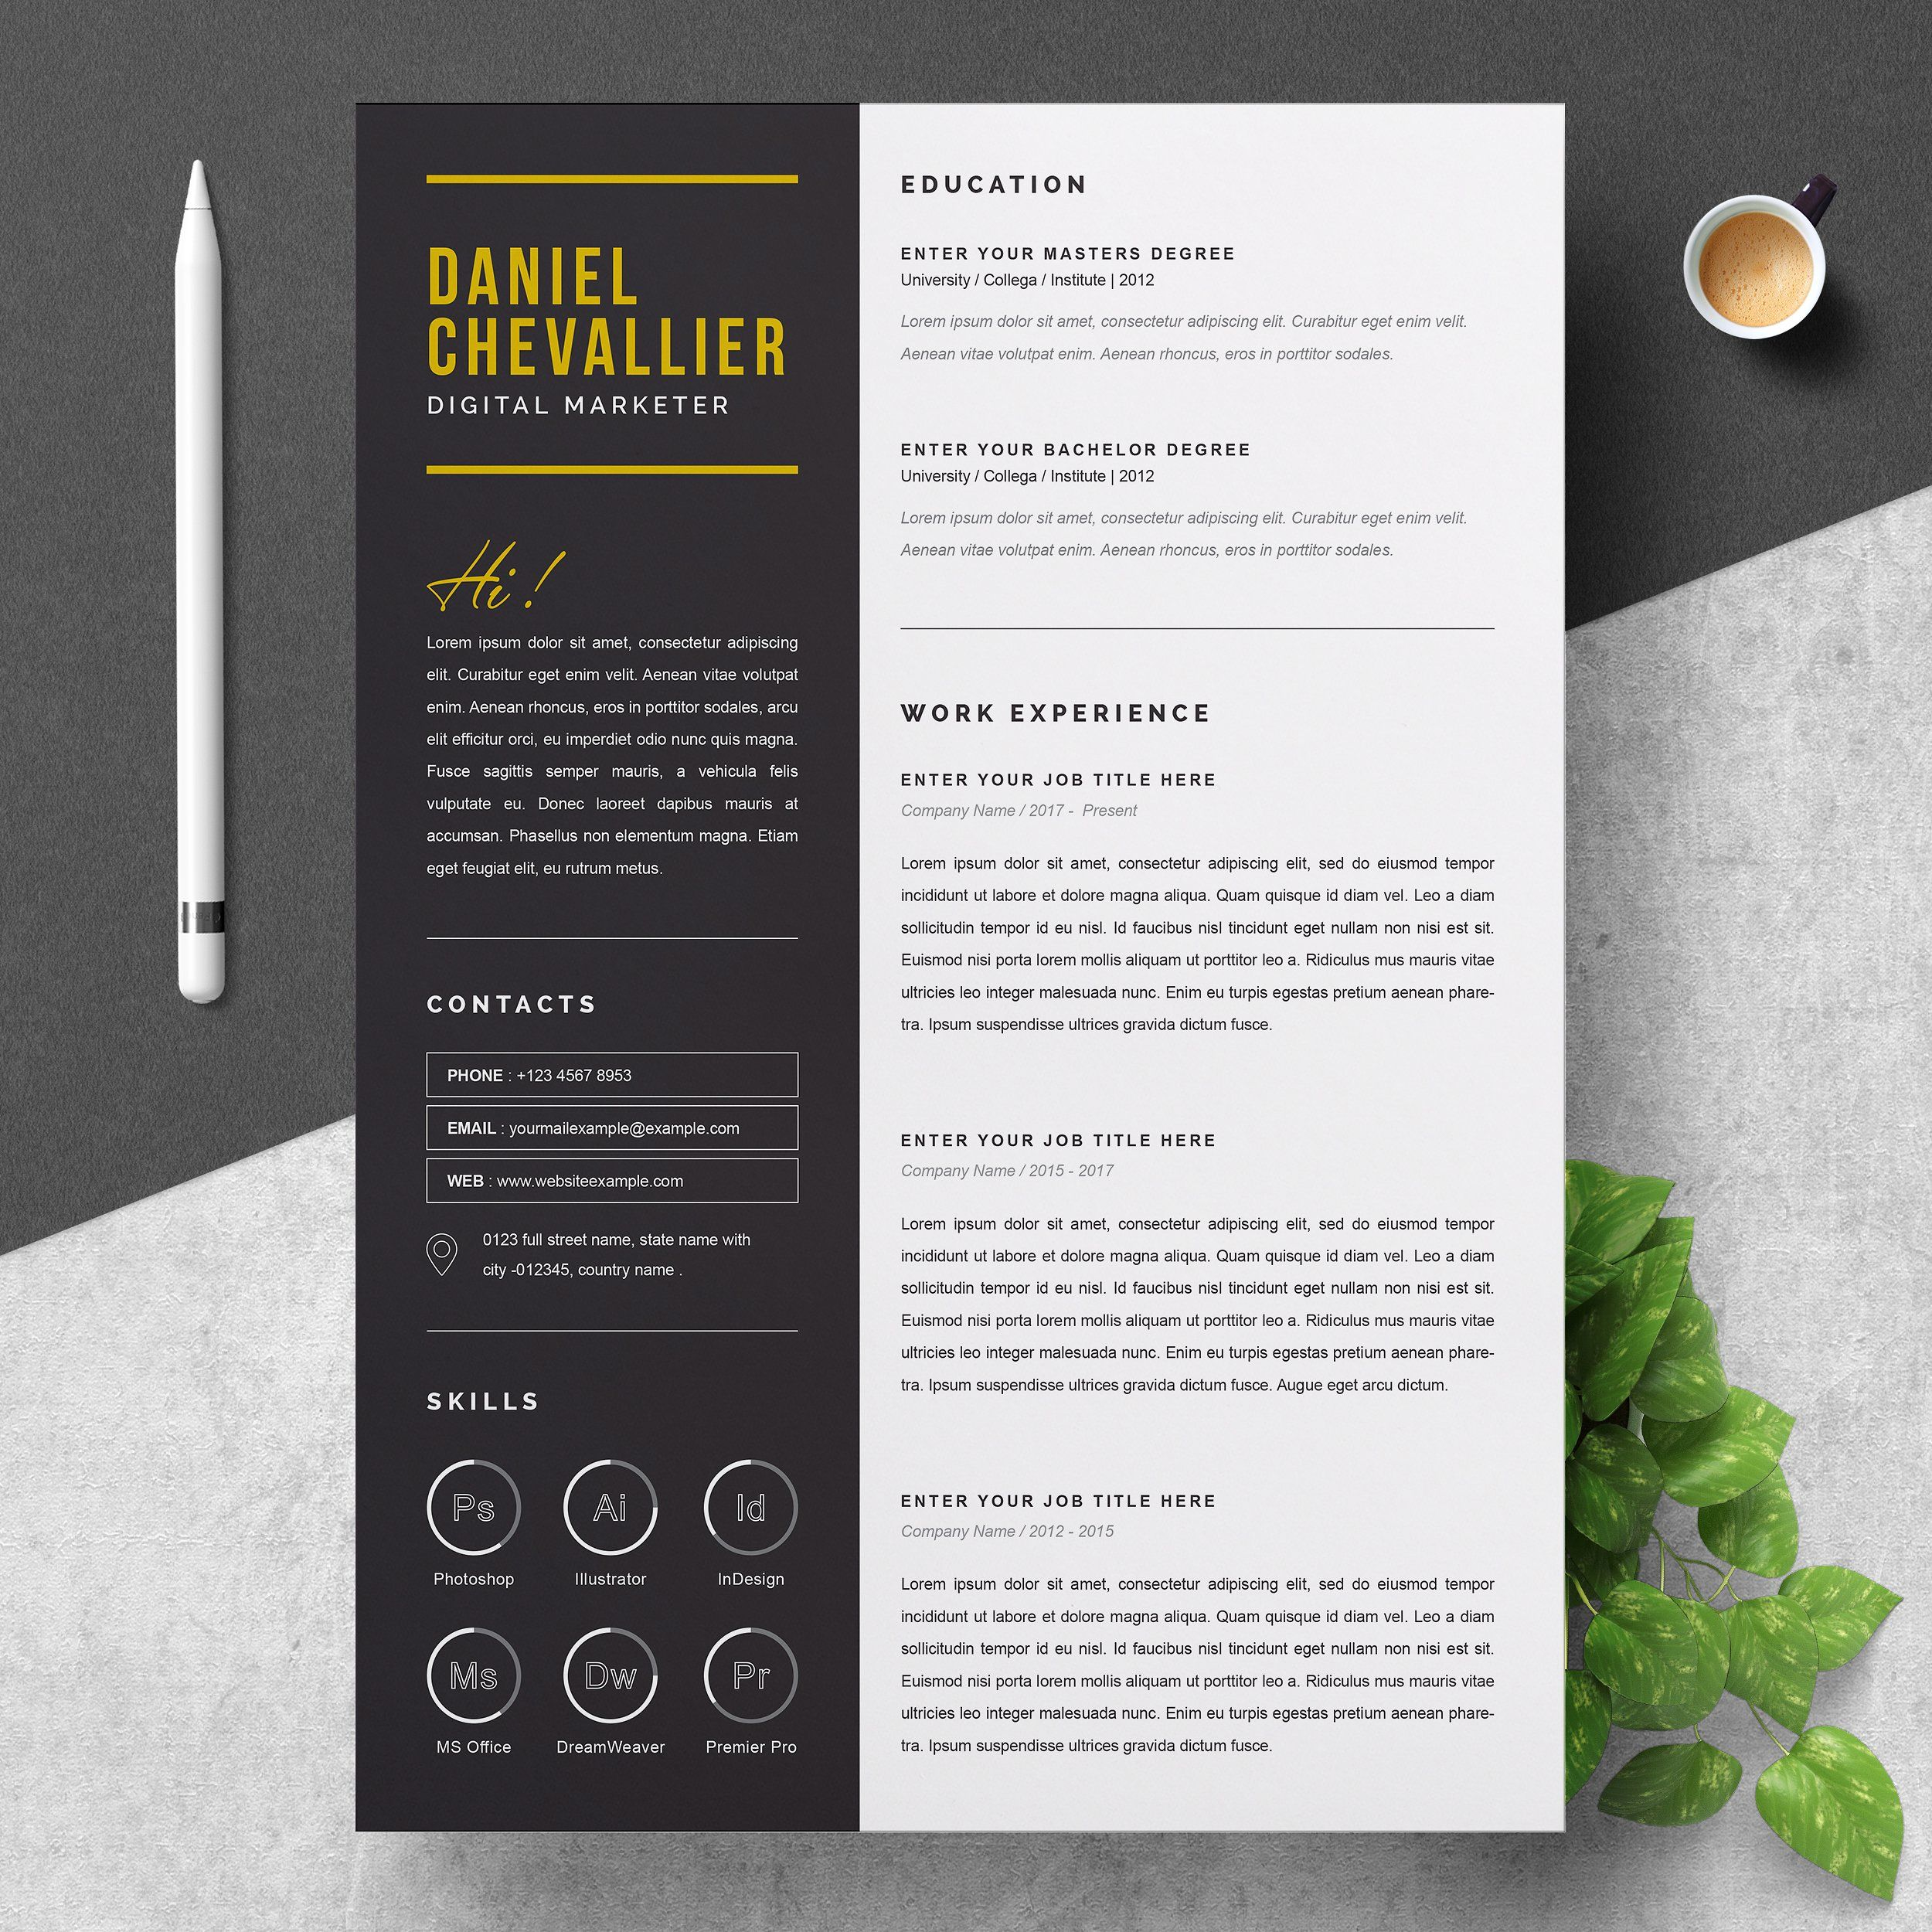 colored resume icons november professional colors help toronto capital markets ndt format Resume Professional Resume Colors